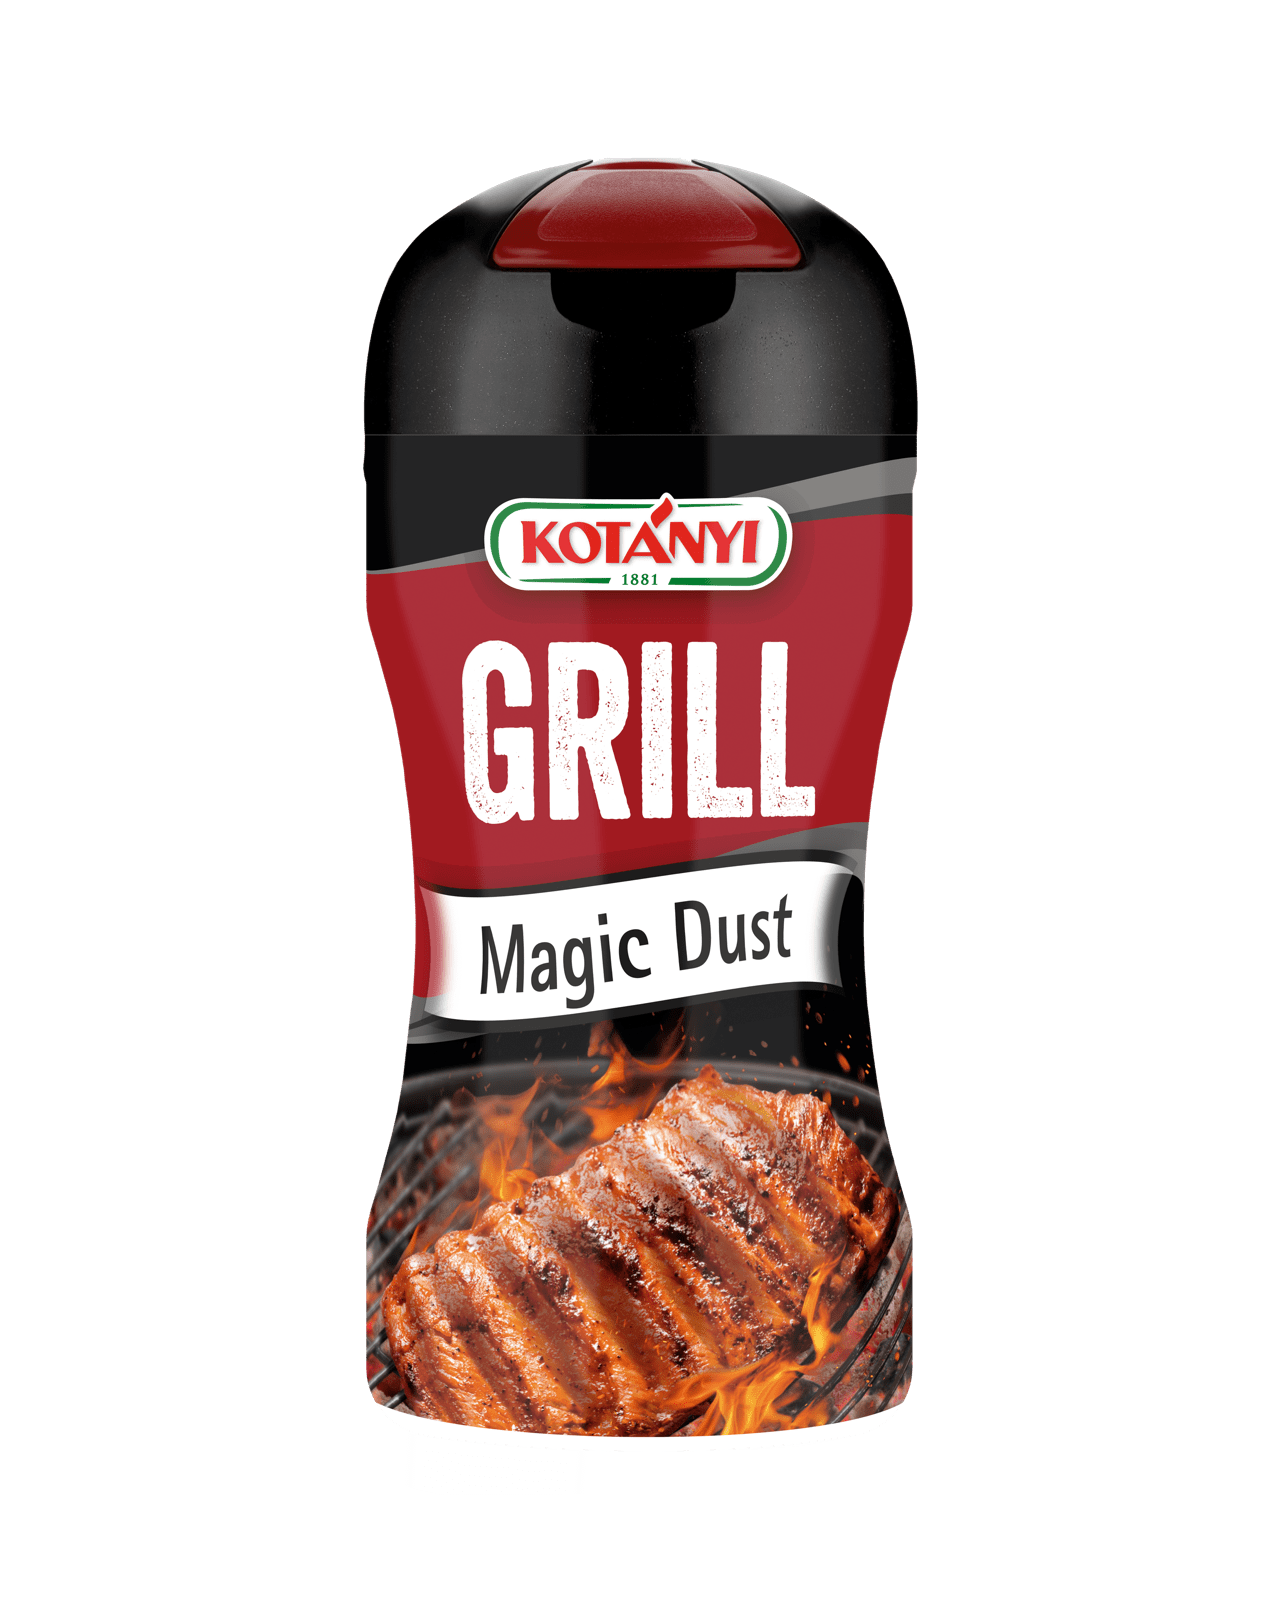 Kotányi Grill Magic Dust in der 80g Streudose